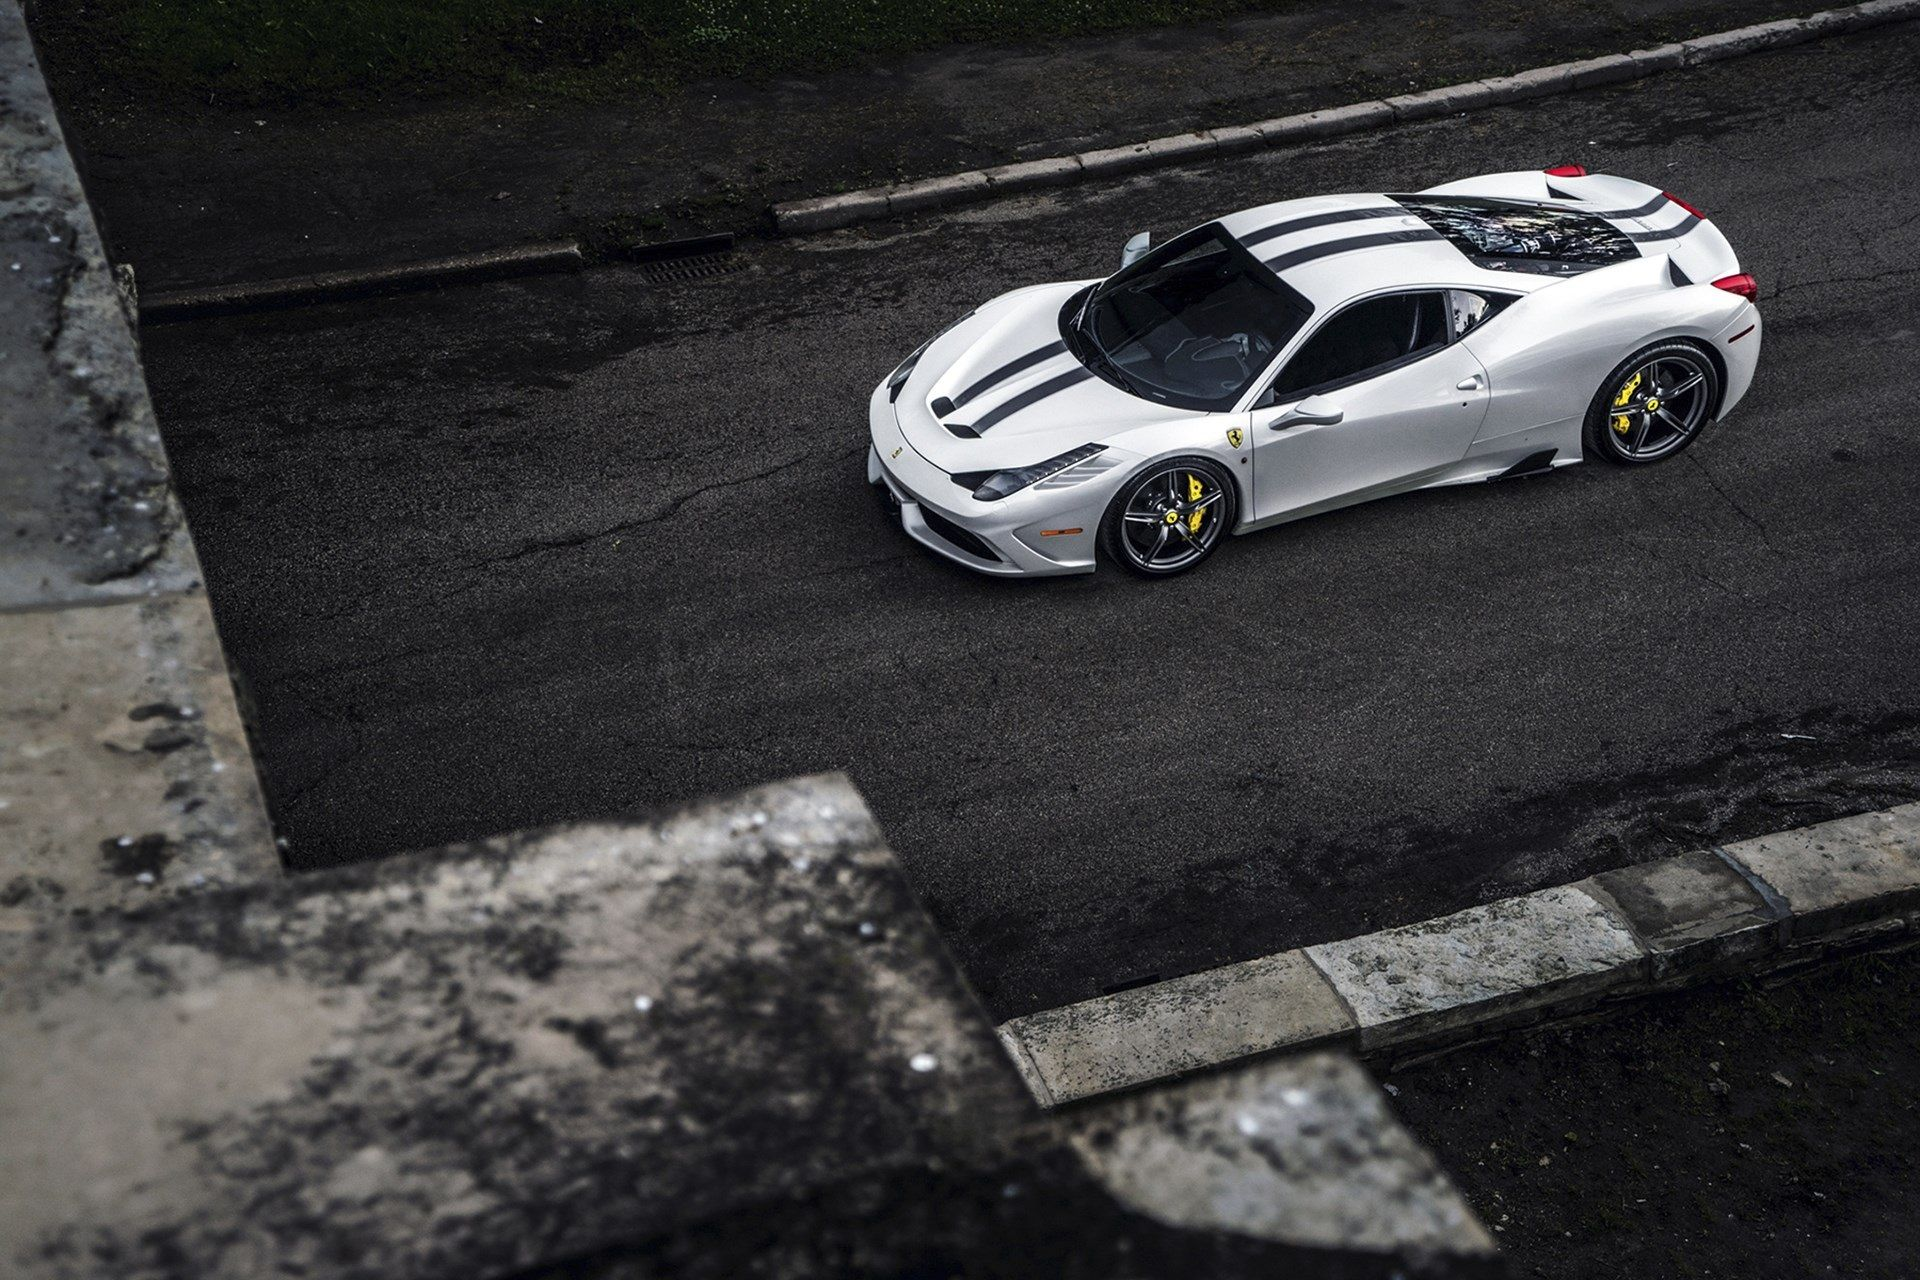 1920x1280 ferrari hd wallpaper for desktop | Ferrari 458 ...